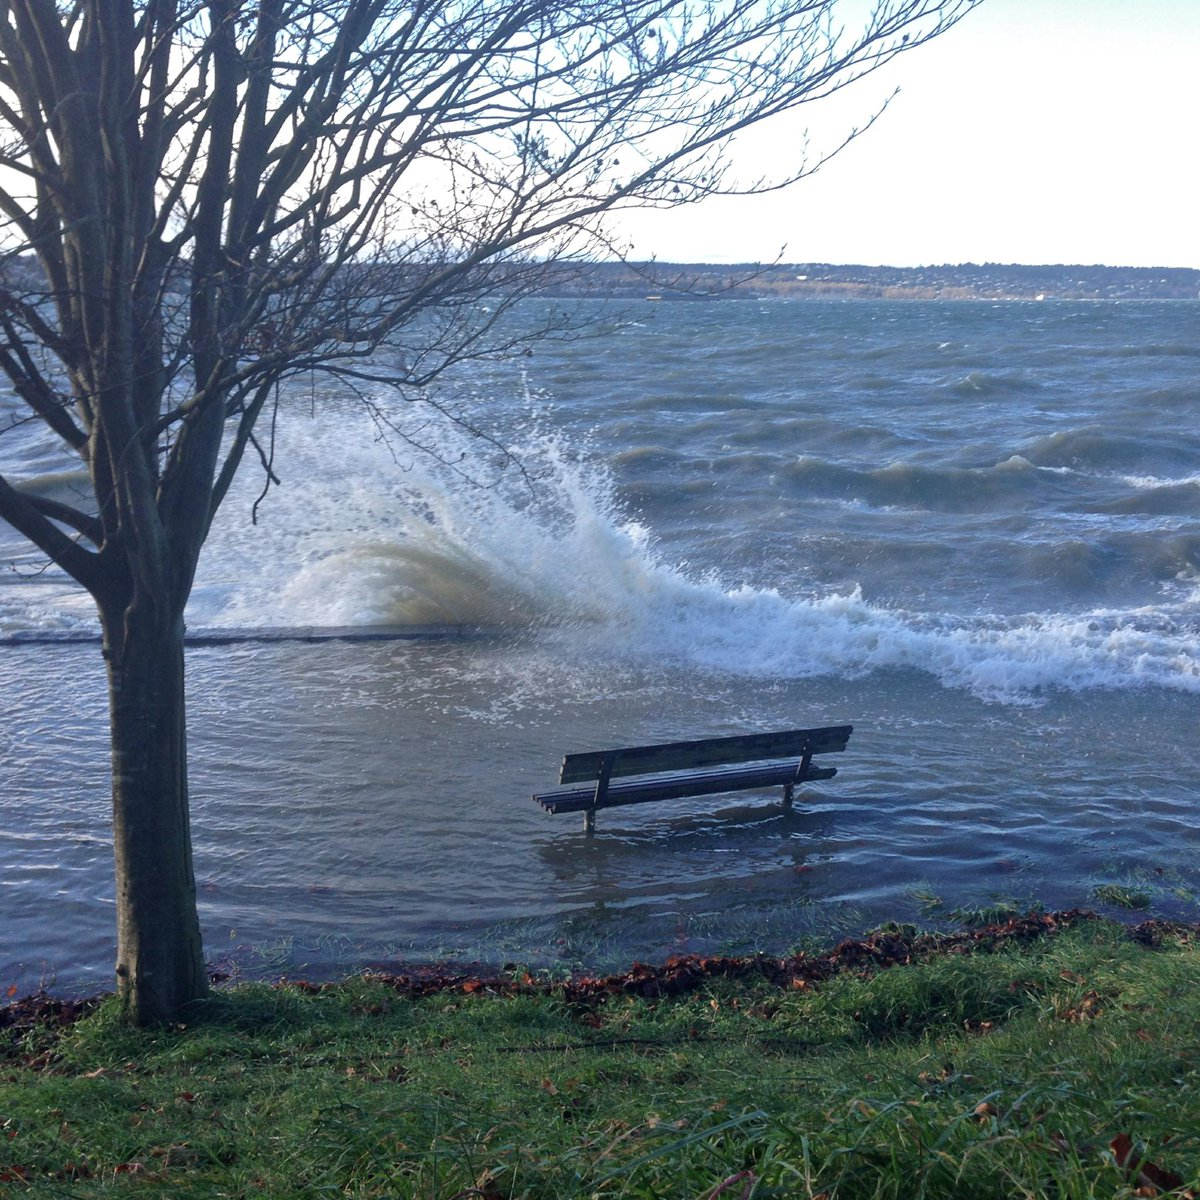 ...and one more for you. #waves #seawall #StanleyPark #EnglishBay #Vancouver http://t.co/qo0iYdLc93